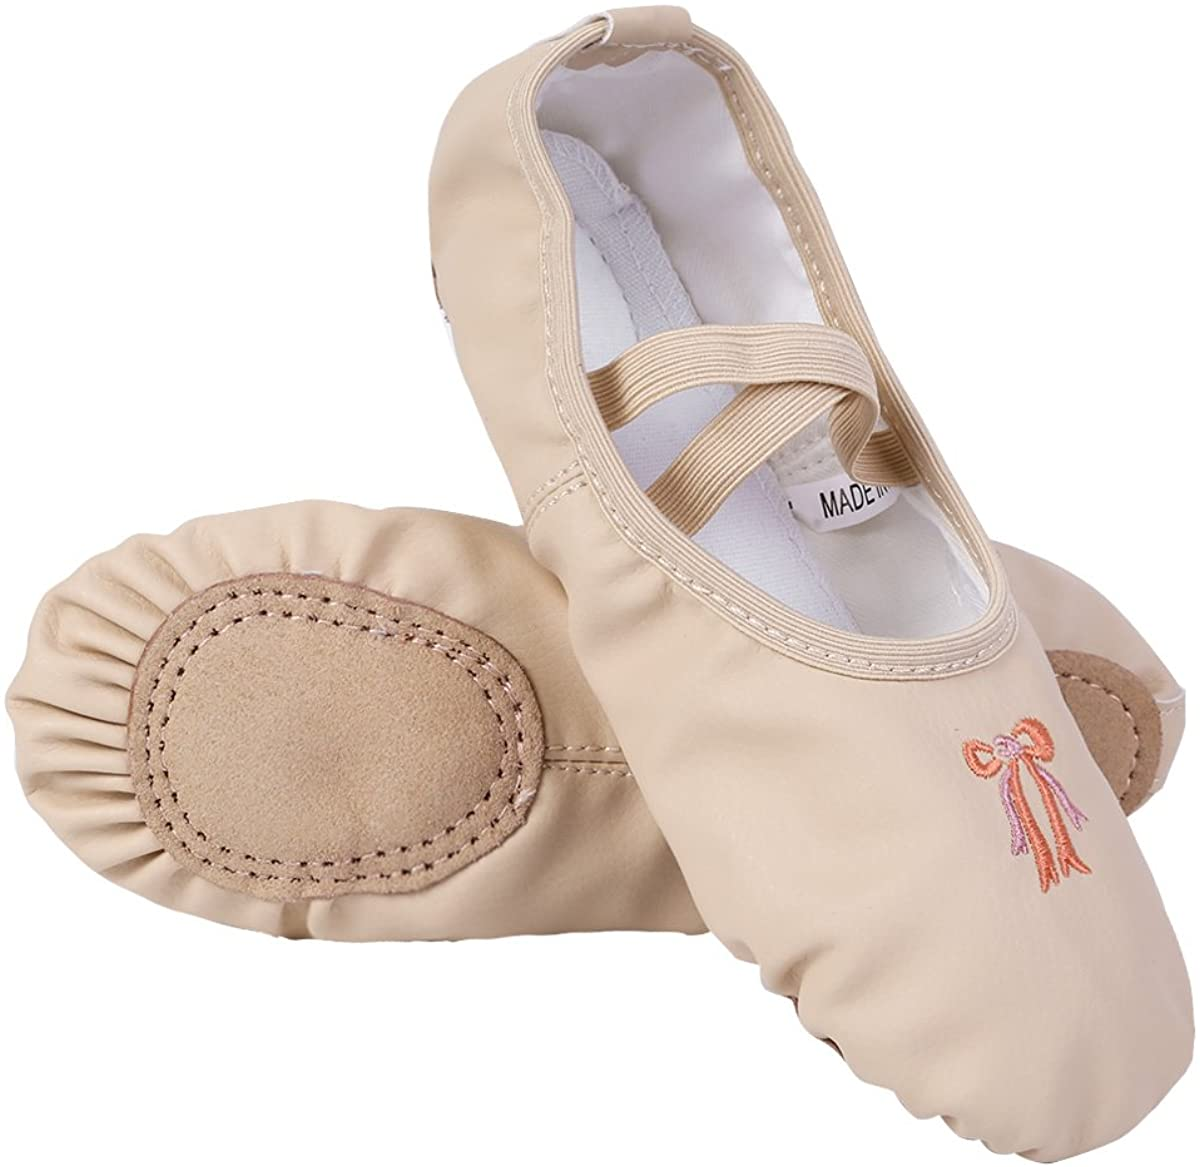 ACSUSS Kids Toddler Girls Split-Sole Embroidered Bowknot Leather Ballet Shoes Slippers